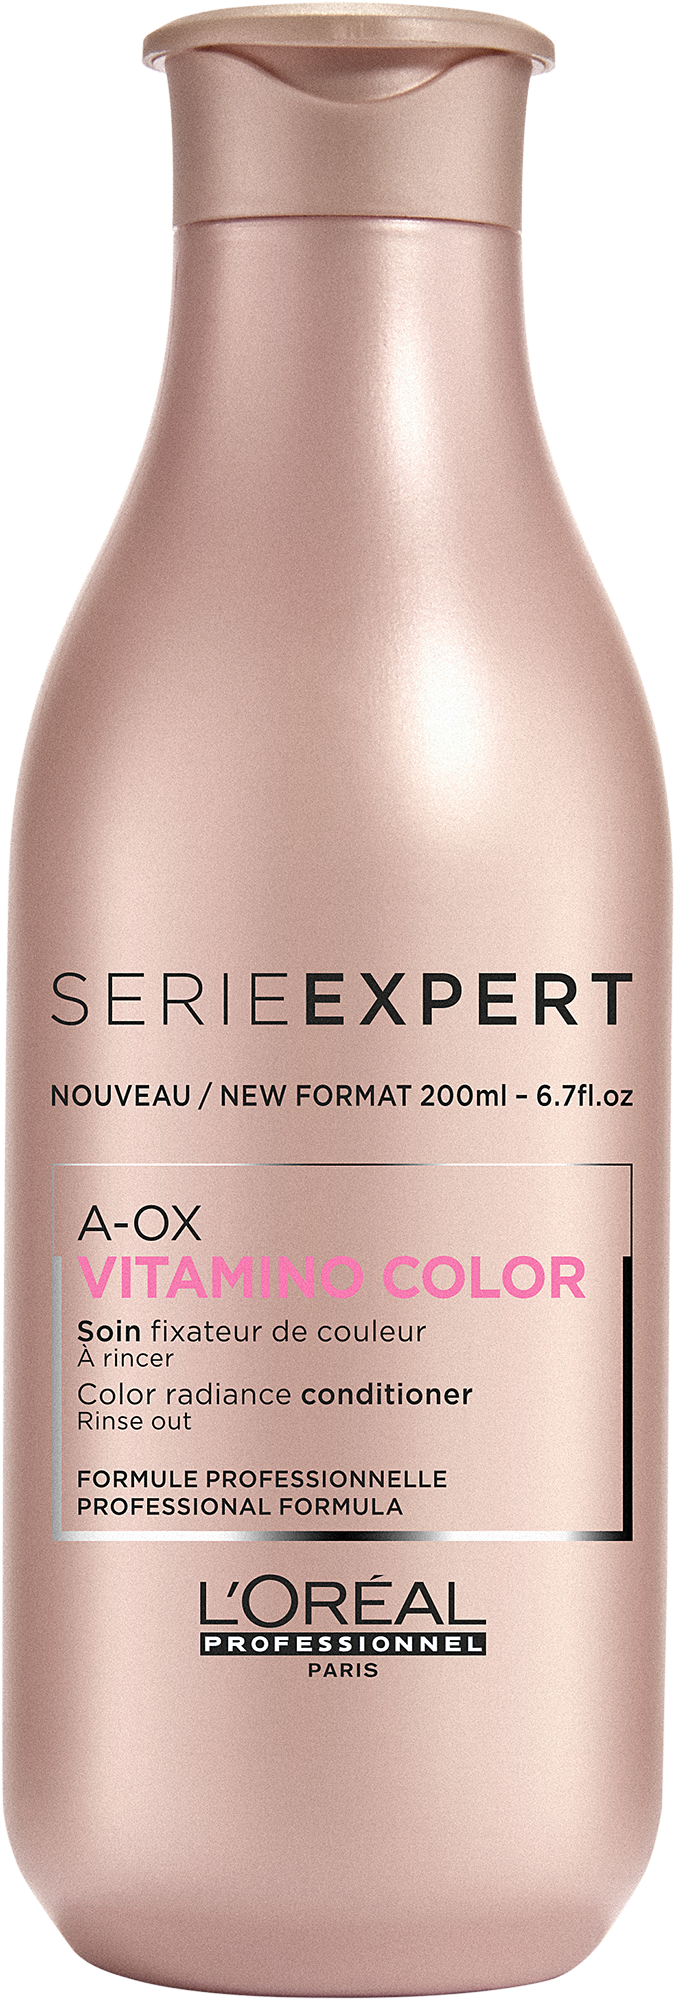 L'oreal Serie Expert Vitamino Conditioner 200ml